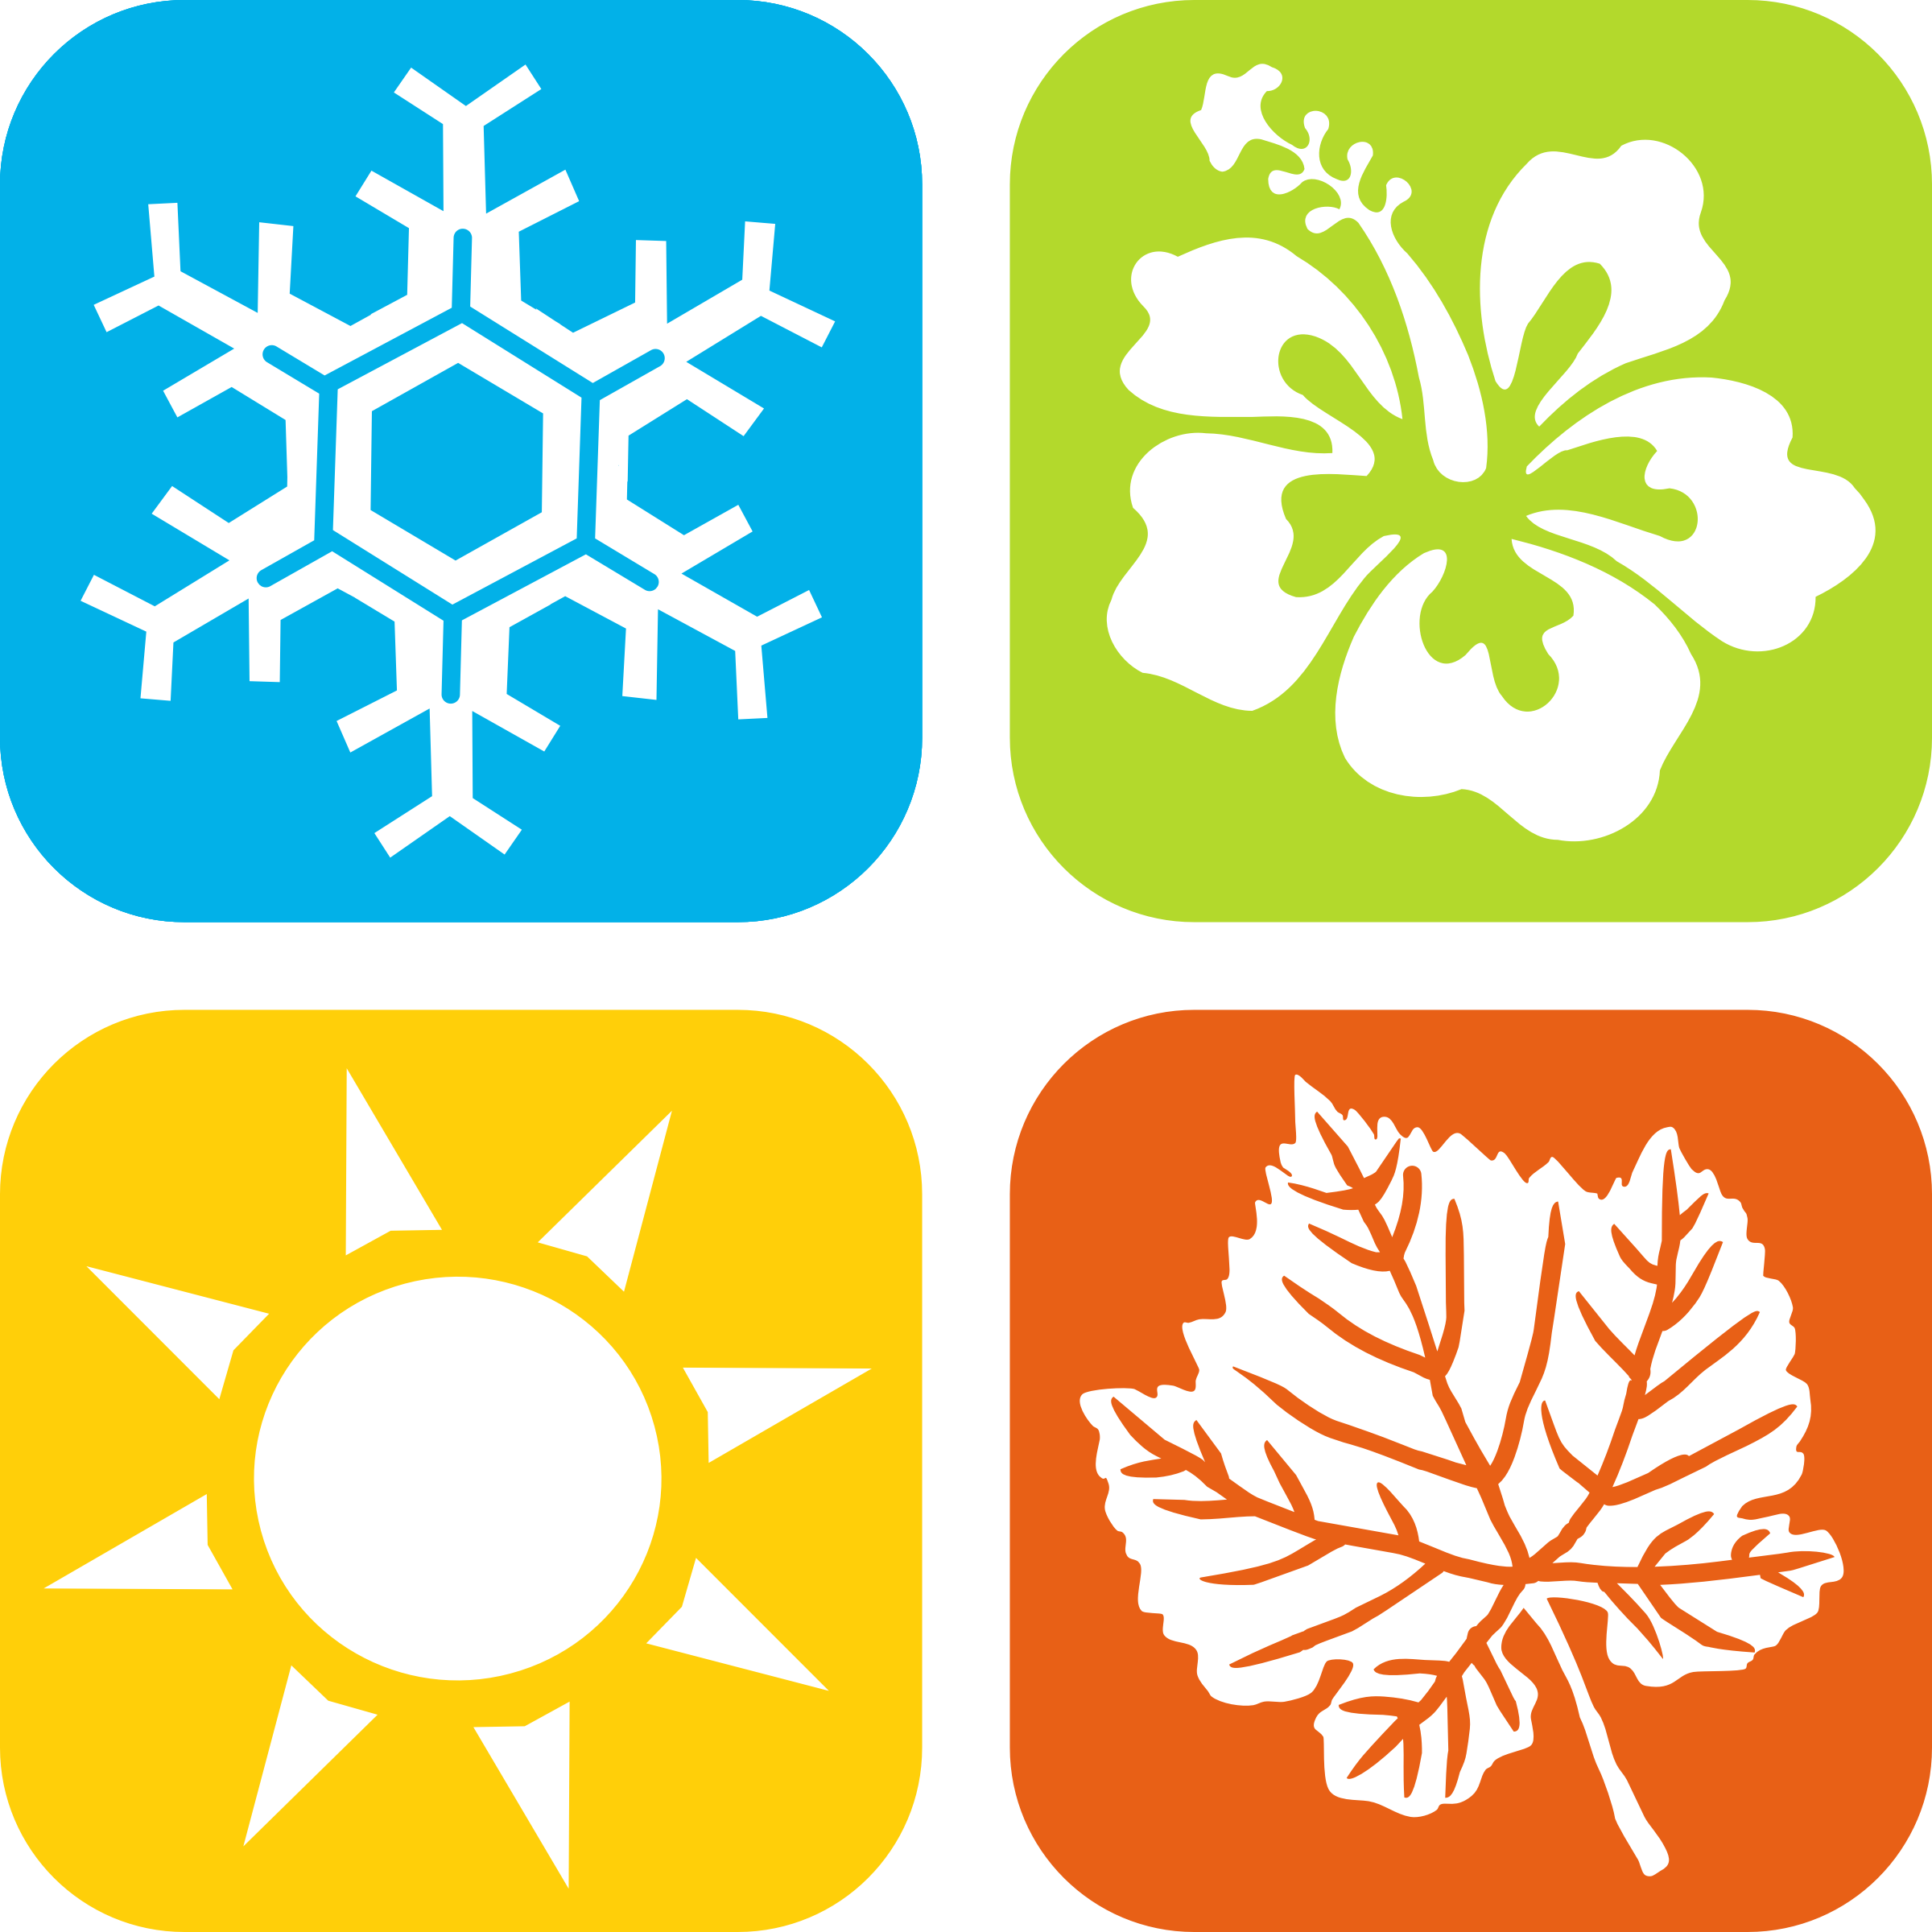 graphic Conditioner clipart black and white. Seasons icons by gdj